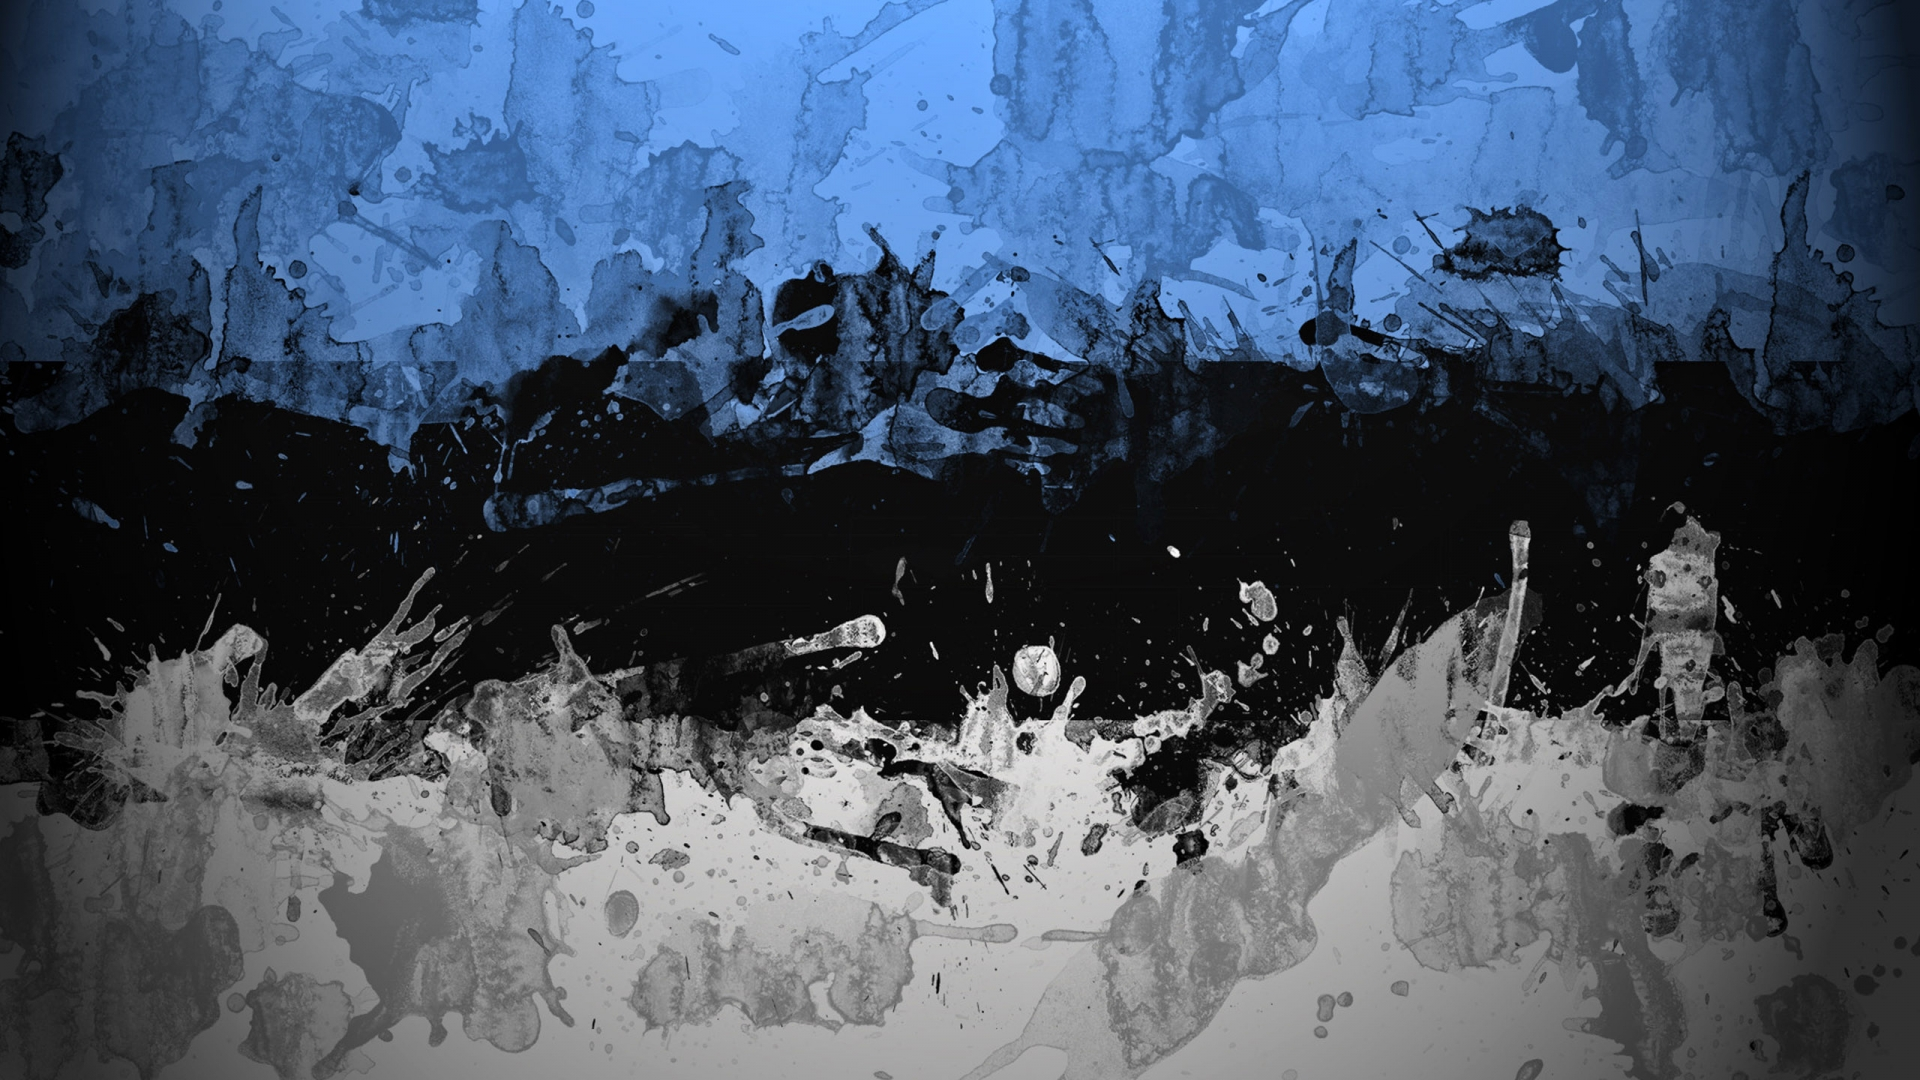 abstract wallpapers 1080p   Favourite Pictures 1920x1080